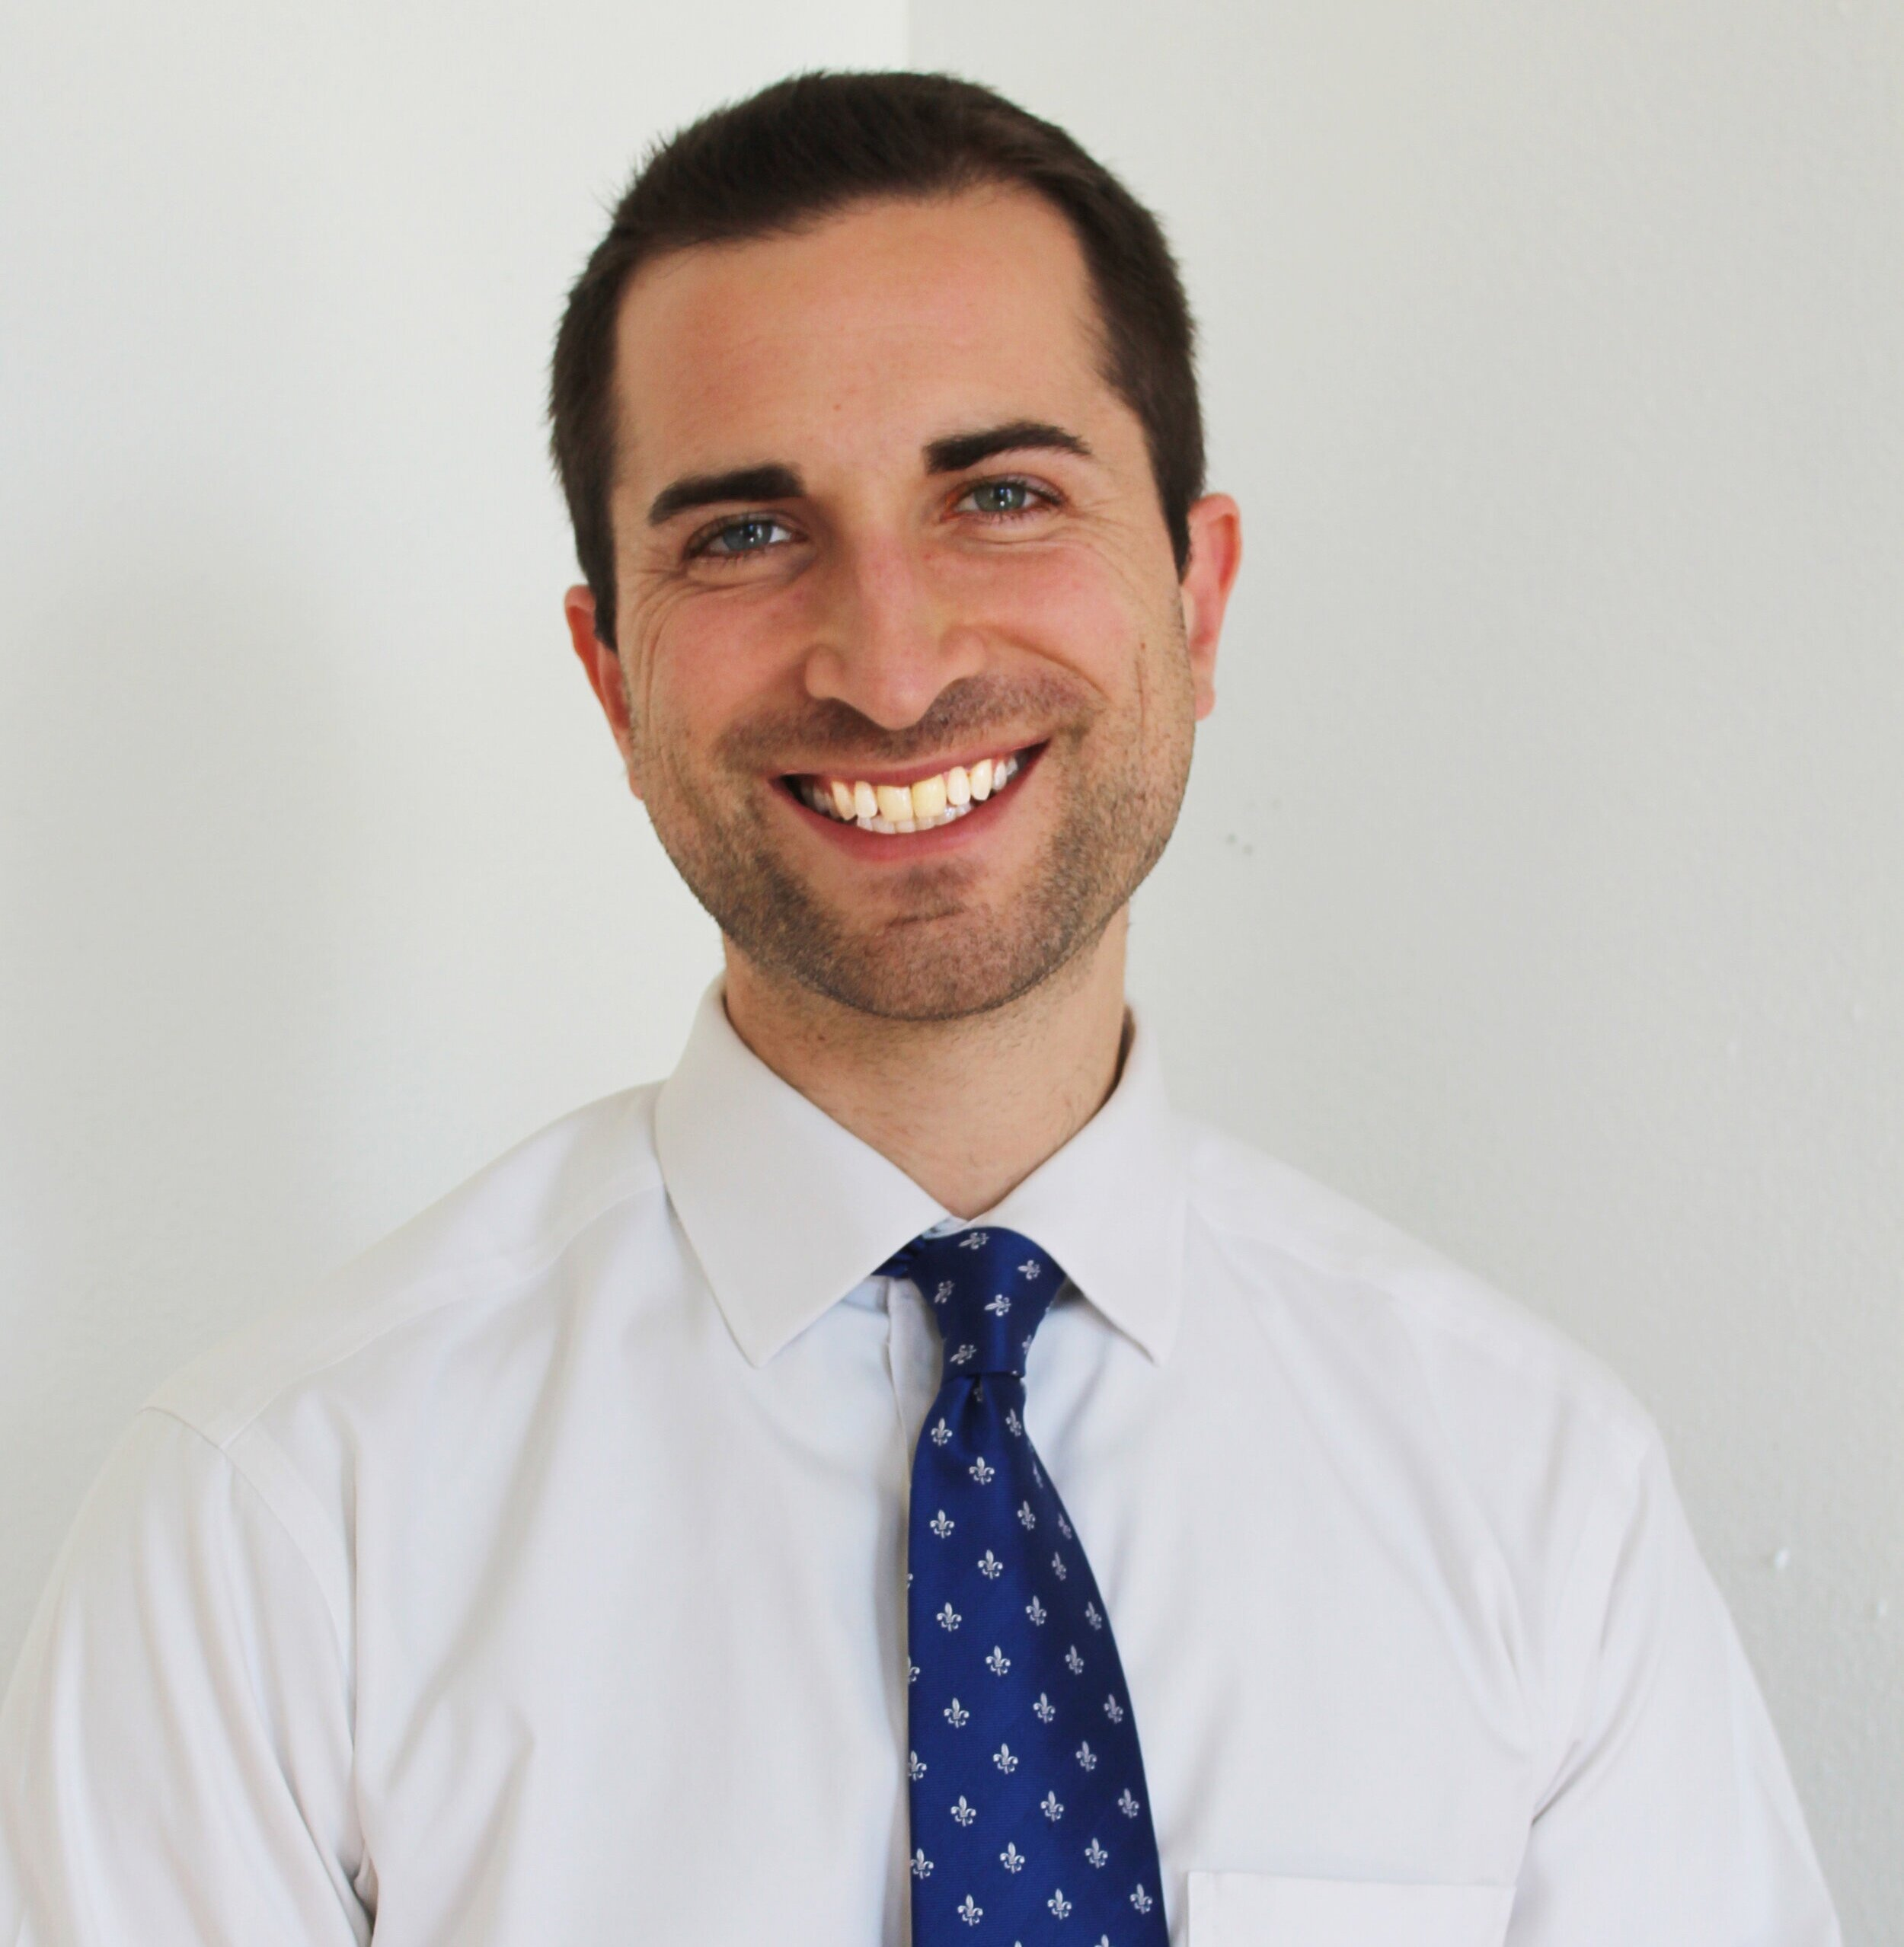 Dr. Joshua Frenkel(MD & MPH) - The Wang Vision Institute is proud to welcome Dr. Joshua Frenkel to the team. Dr. Frenkel is an expert in glaucoma and cataract treatment. Click here to schedule a free vision evaluation and learn about vision loss treatment that is covered by medicare and insurance.